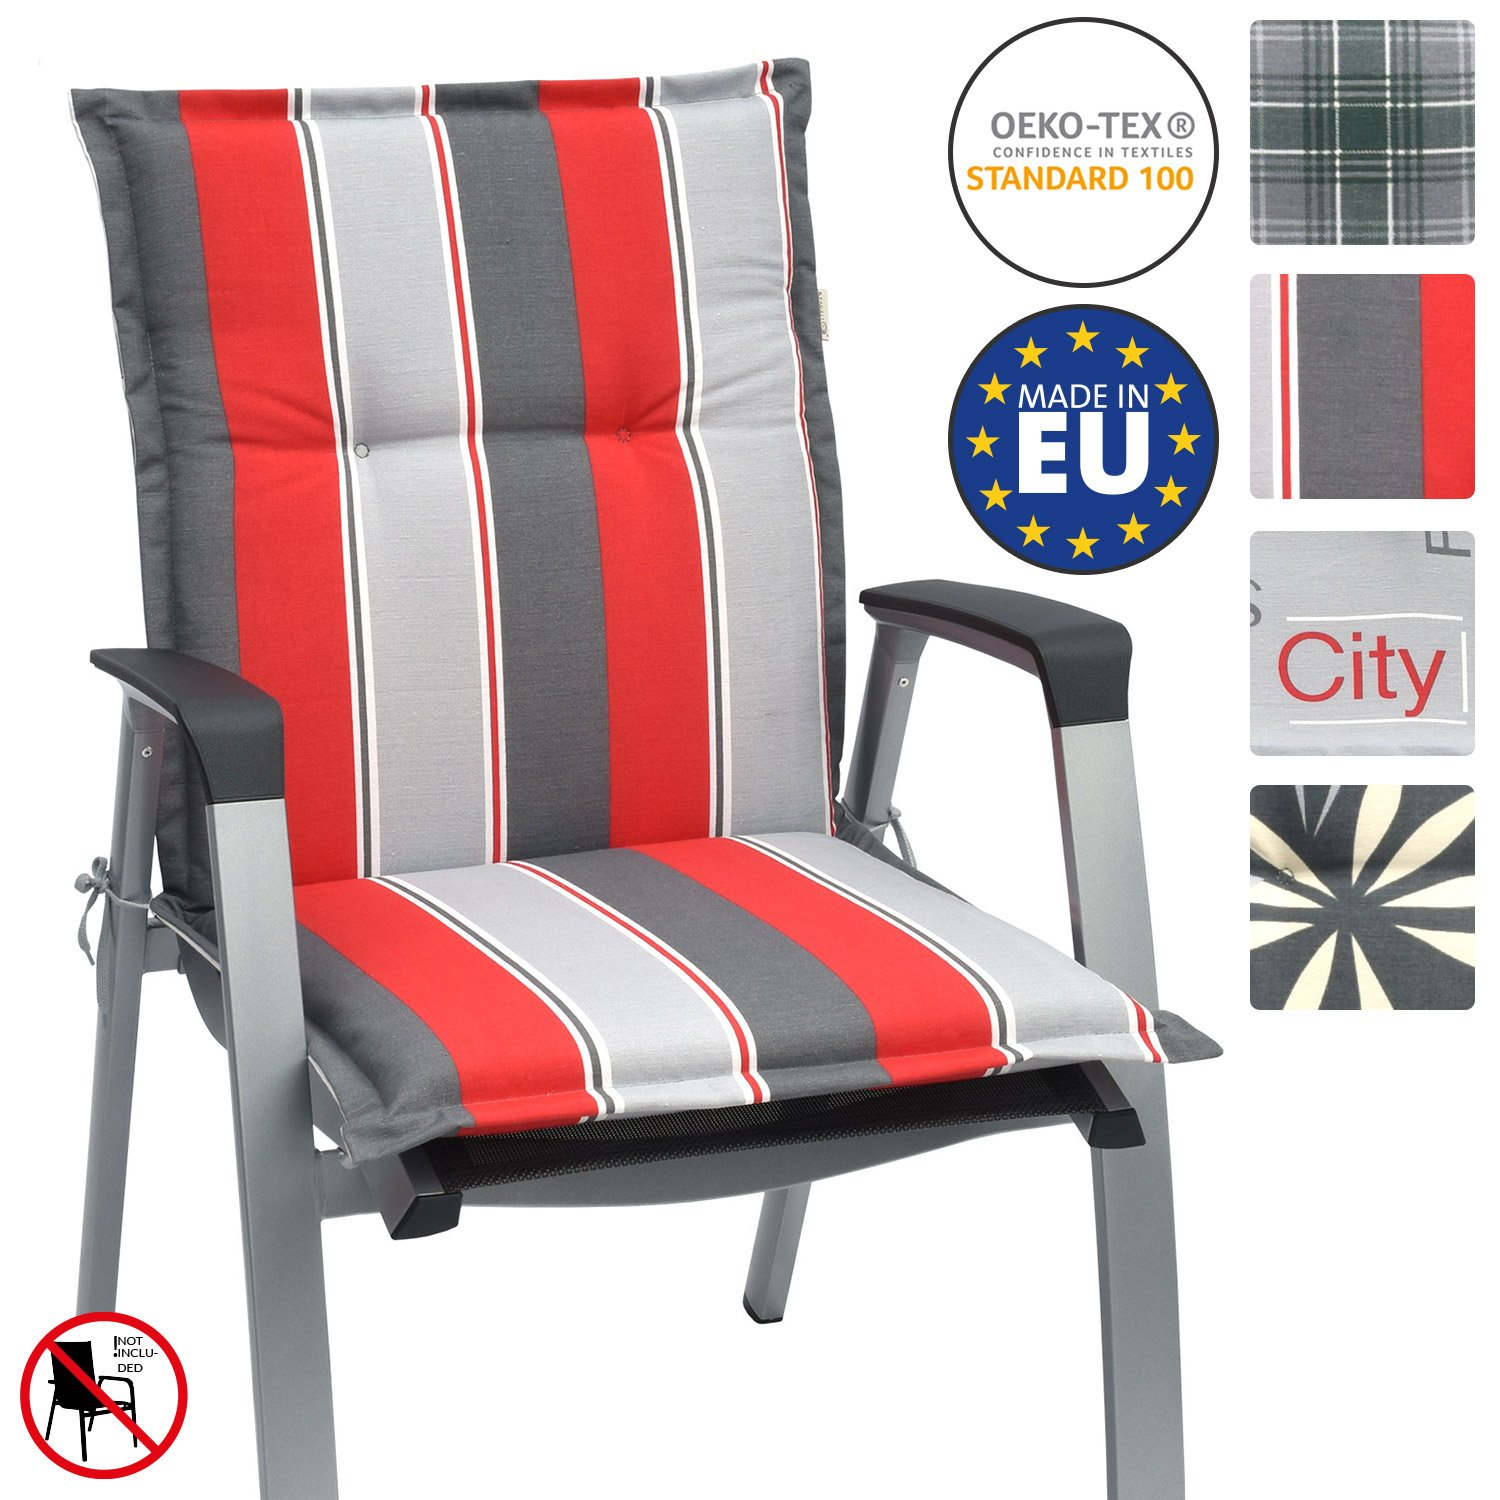 Beautissu Garden Chair Cushion Loft NL 100 x 50 x 6 cm Seatpad and Backrest with Soft Foamcore Padding Design City